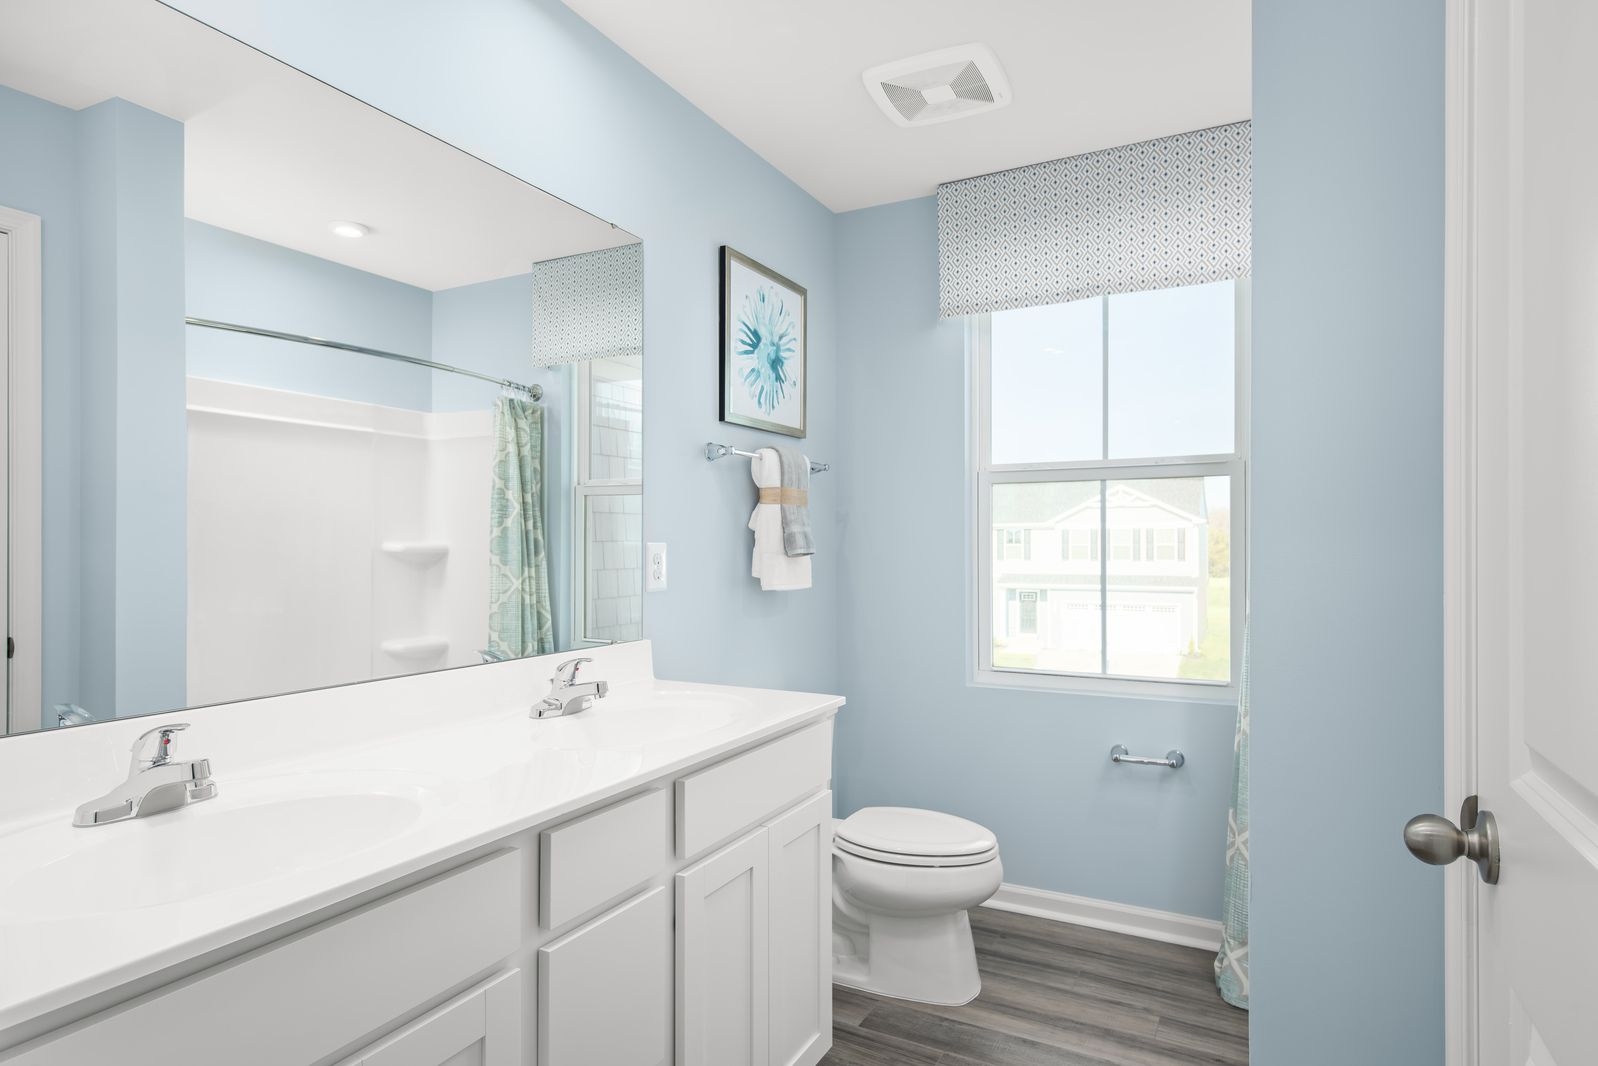 Bathroom featured in the Elm By Ryan Homes in Akron, OH